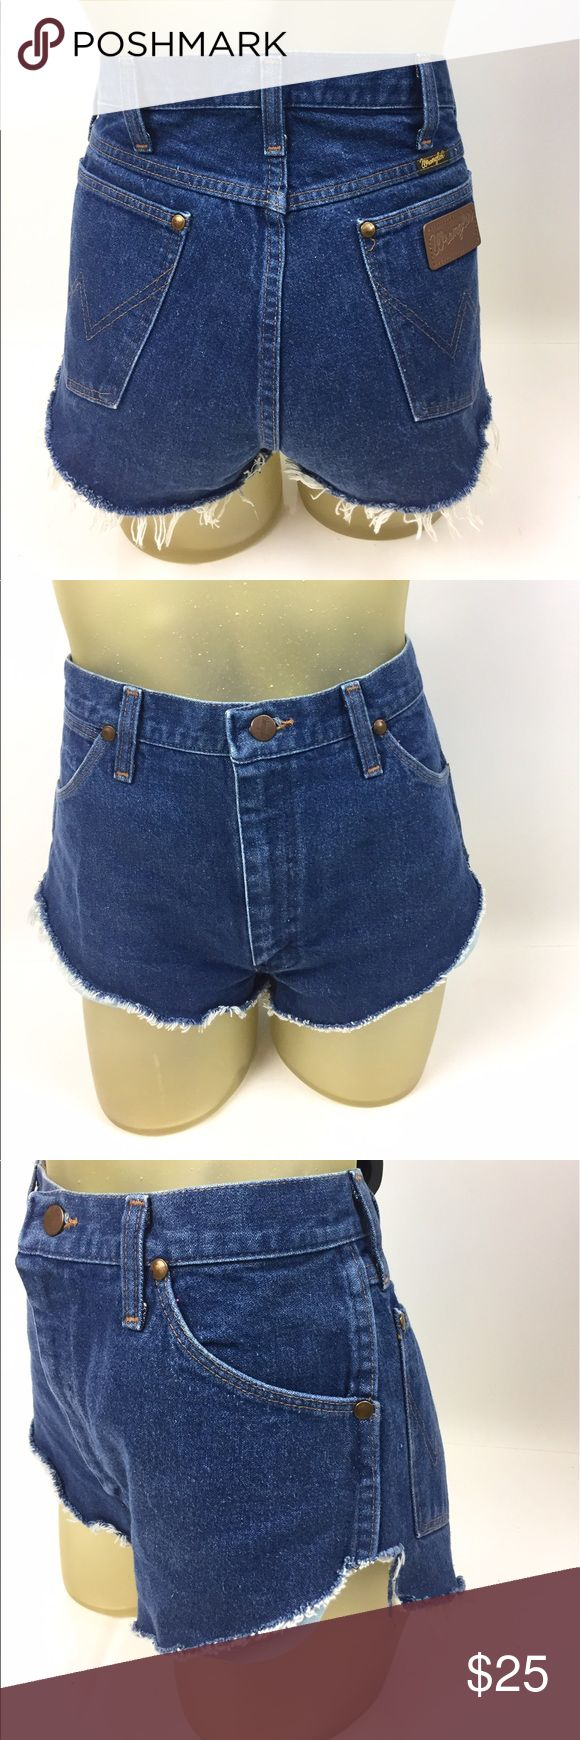 """Wrangler High Rise Dolphin Cut Off Jean Shorts 6 Hand cut jean shorts with a dolphin side. Frayed hem. 32"""" waist, 12"""" high rise, 1 1/4"""" cheeky inseam. 100% cotton, made in the USA. A04040 Wrangler Shorts Jean Shorts"""